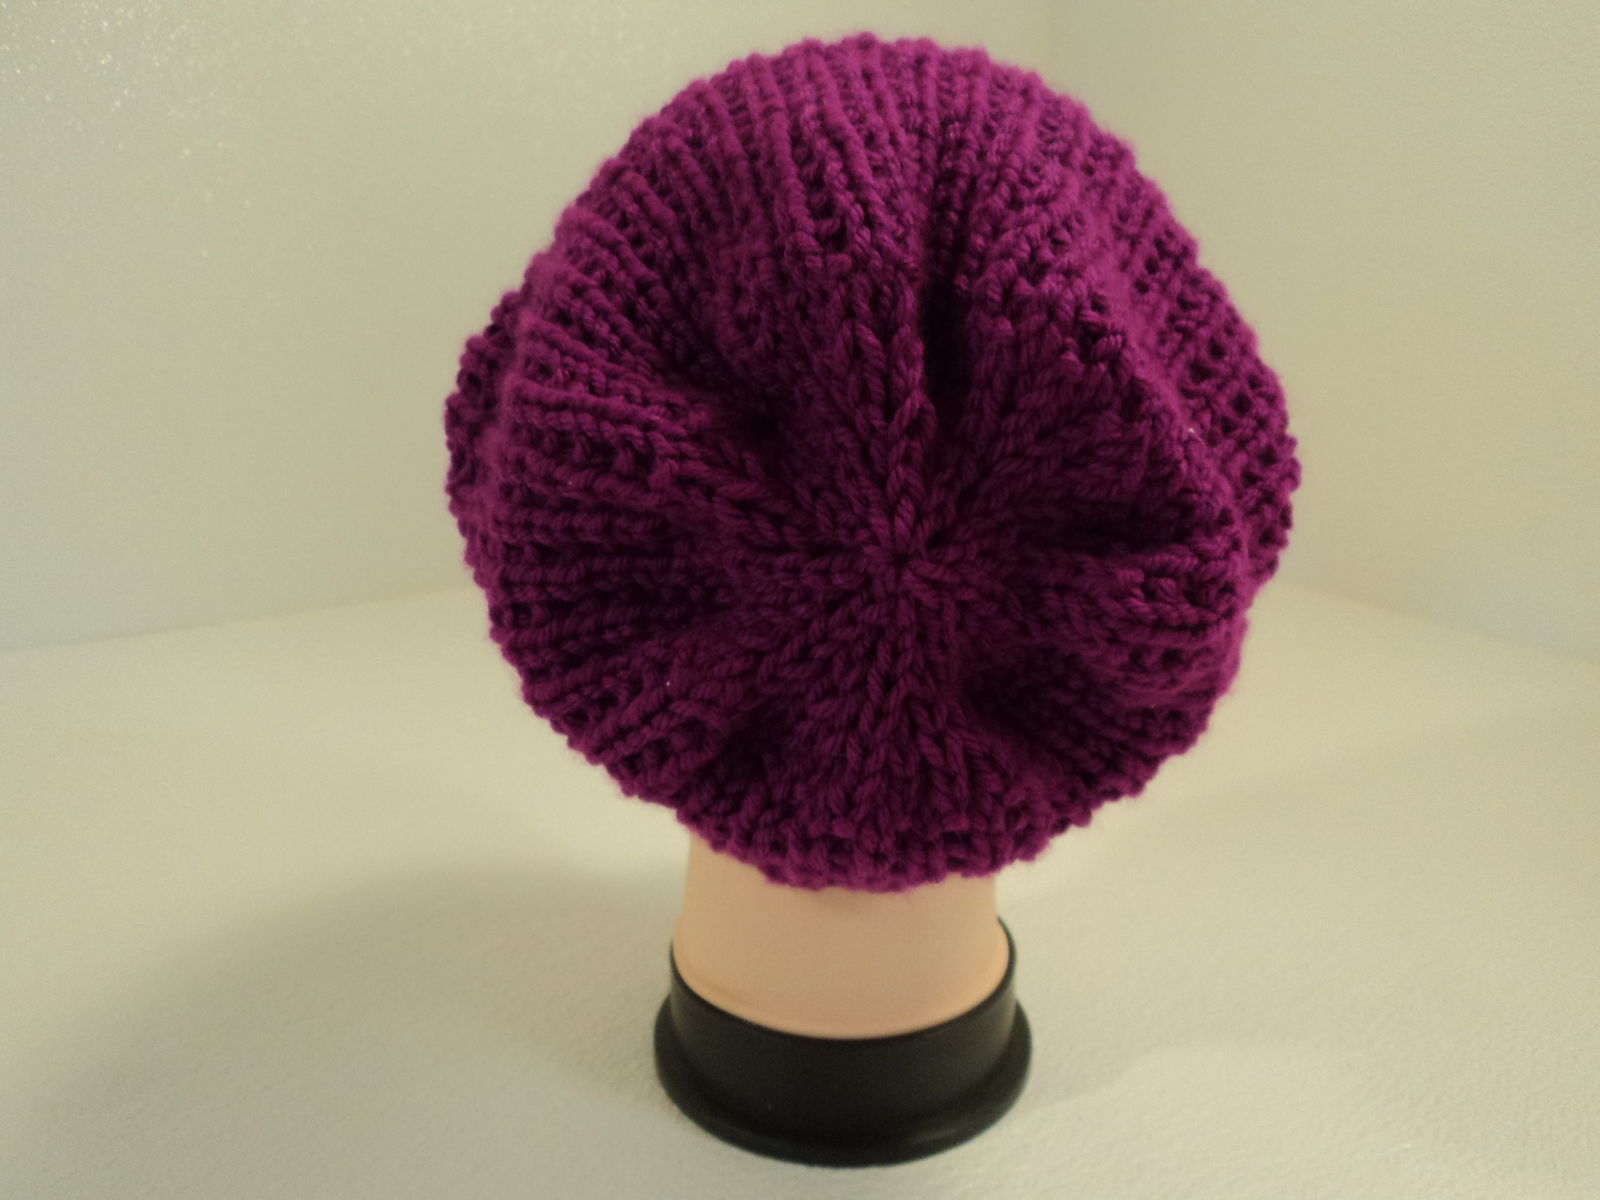 Handcrafted Beanie Hat Magenta Textured Slouchy 100% Acrylic Female Adult Solid